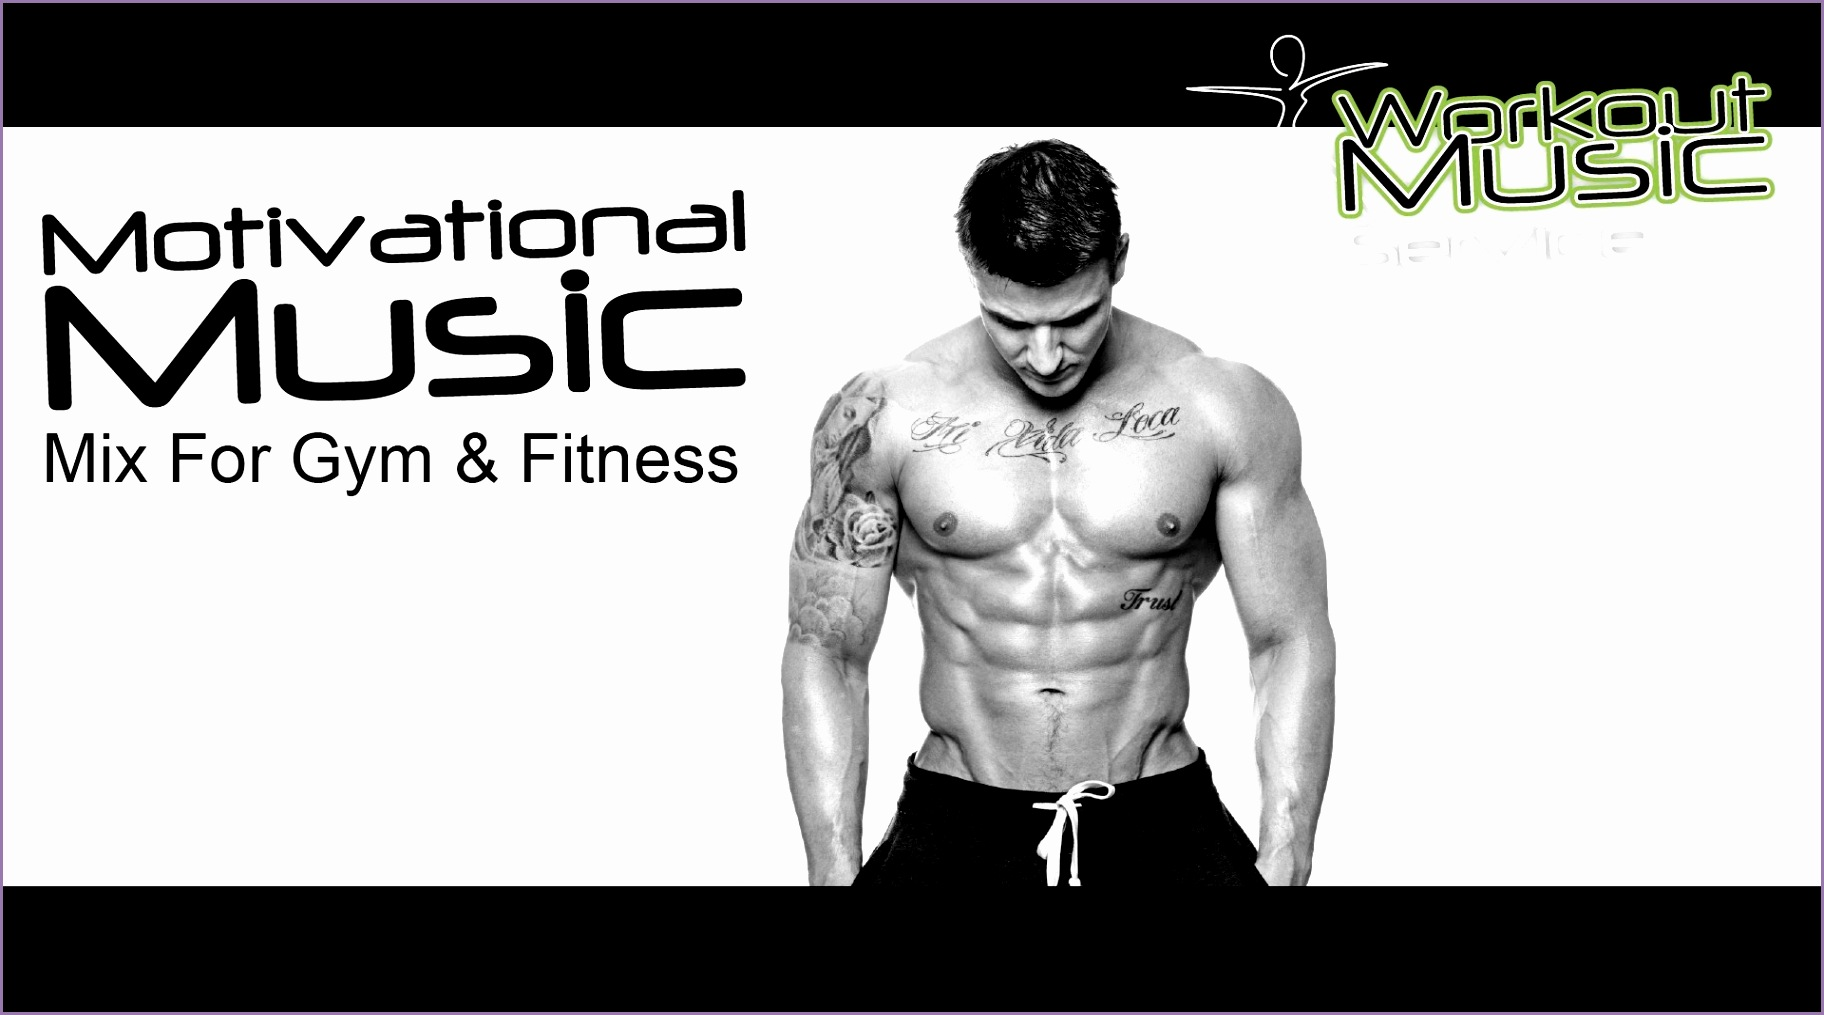 Motivational Music Mix For Gym Fitness bodybuilding motivation